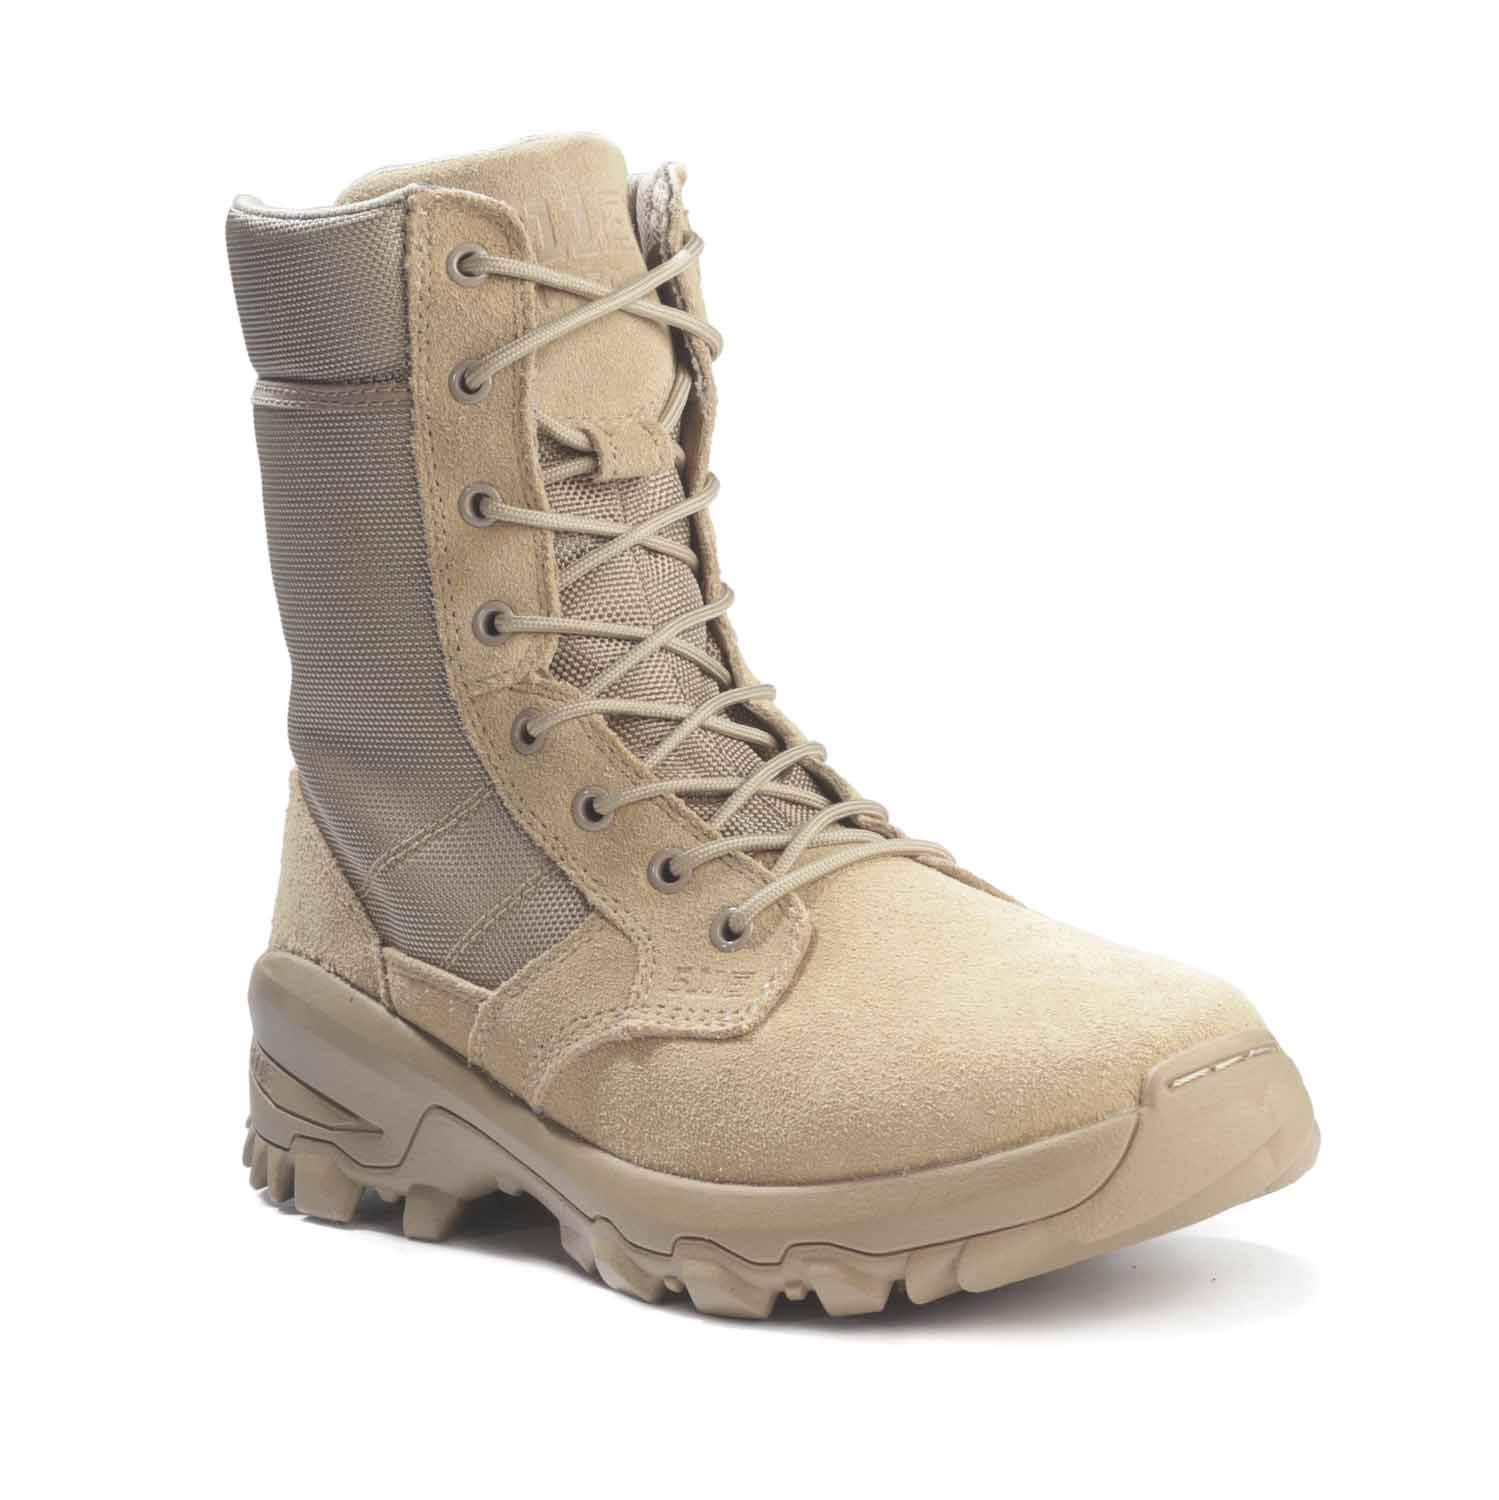 5.11 Tactical Desert Speed 3.0 Side Zip Boots